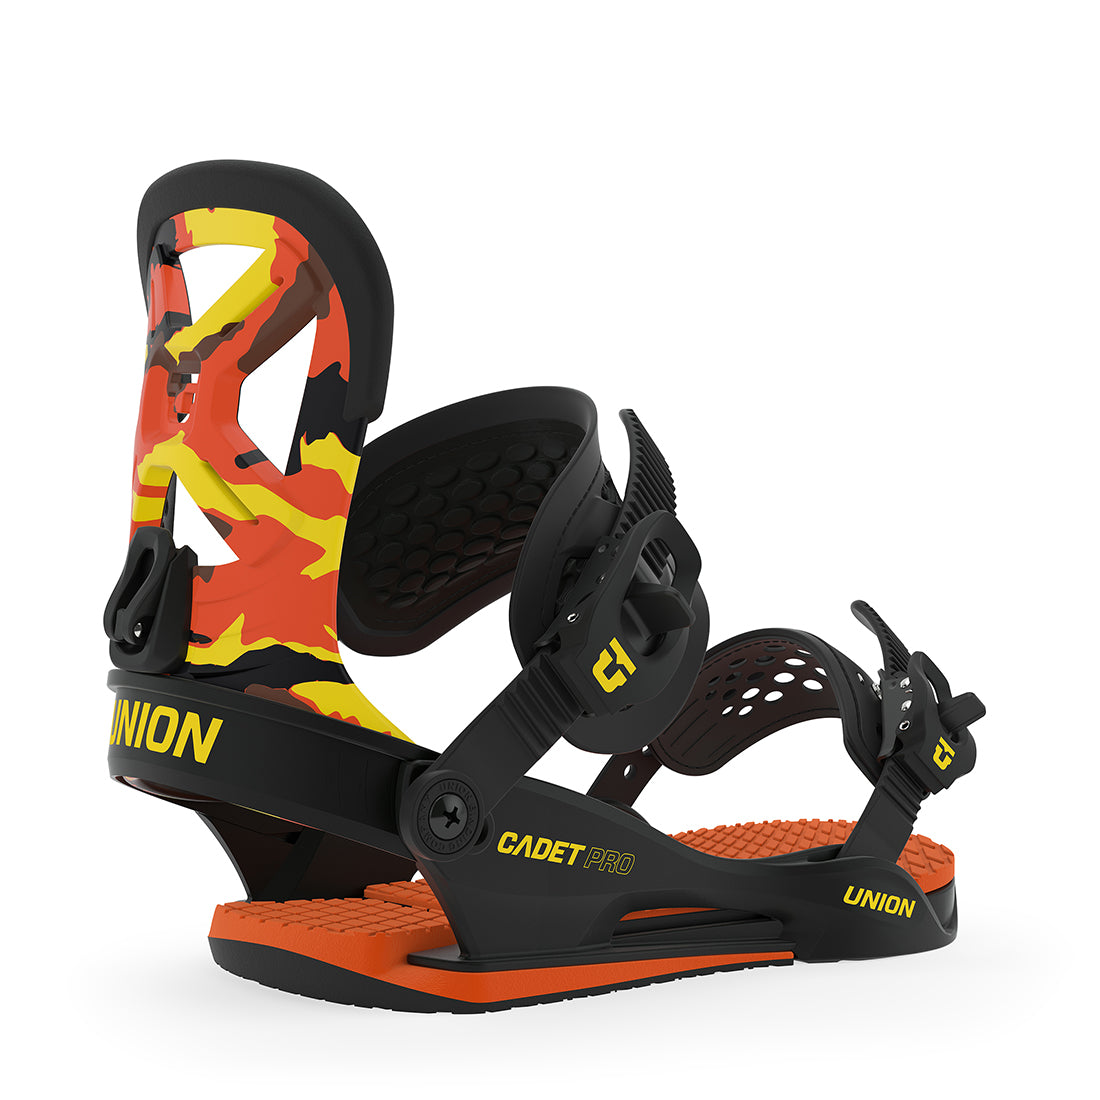 Union Cadet Pro Snowboard Bindings Youth 2020